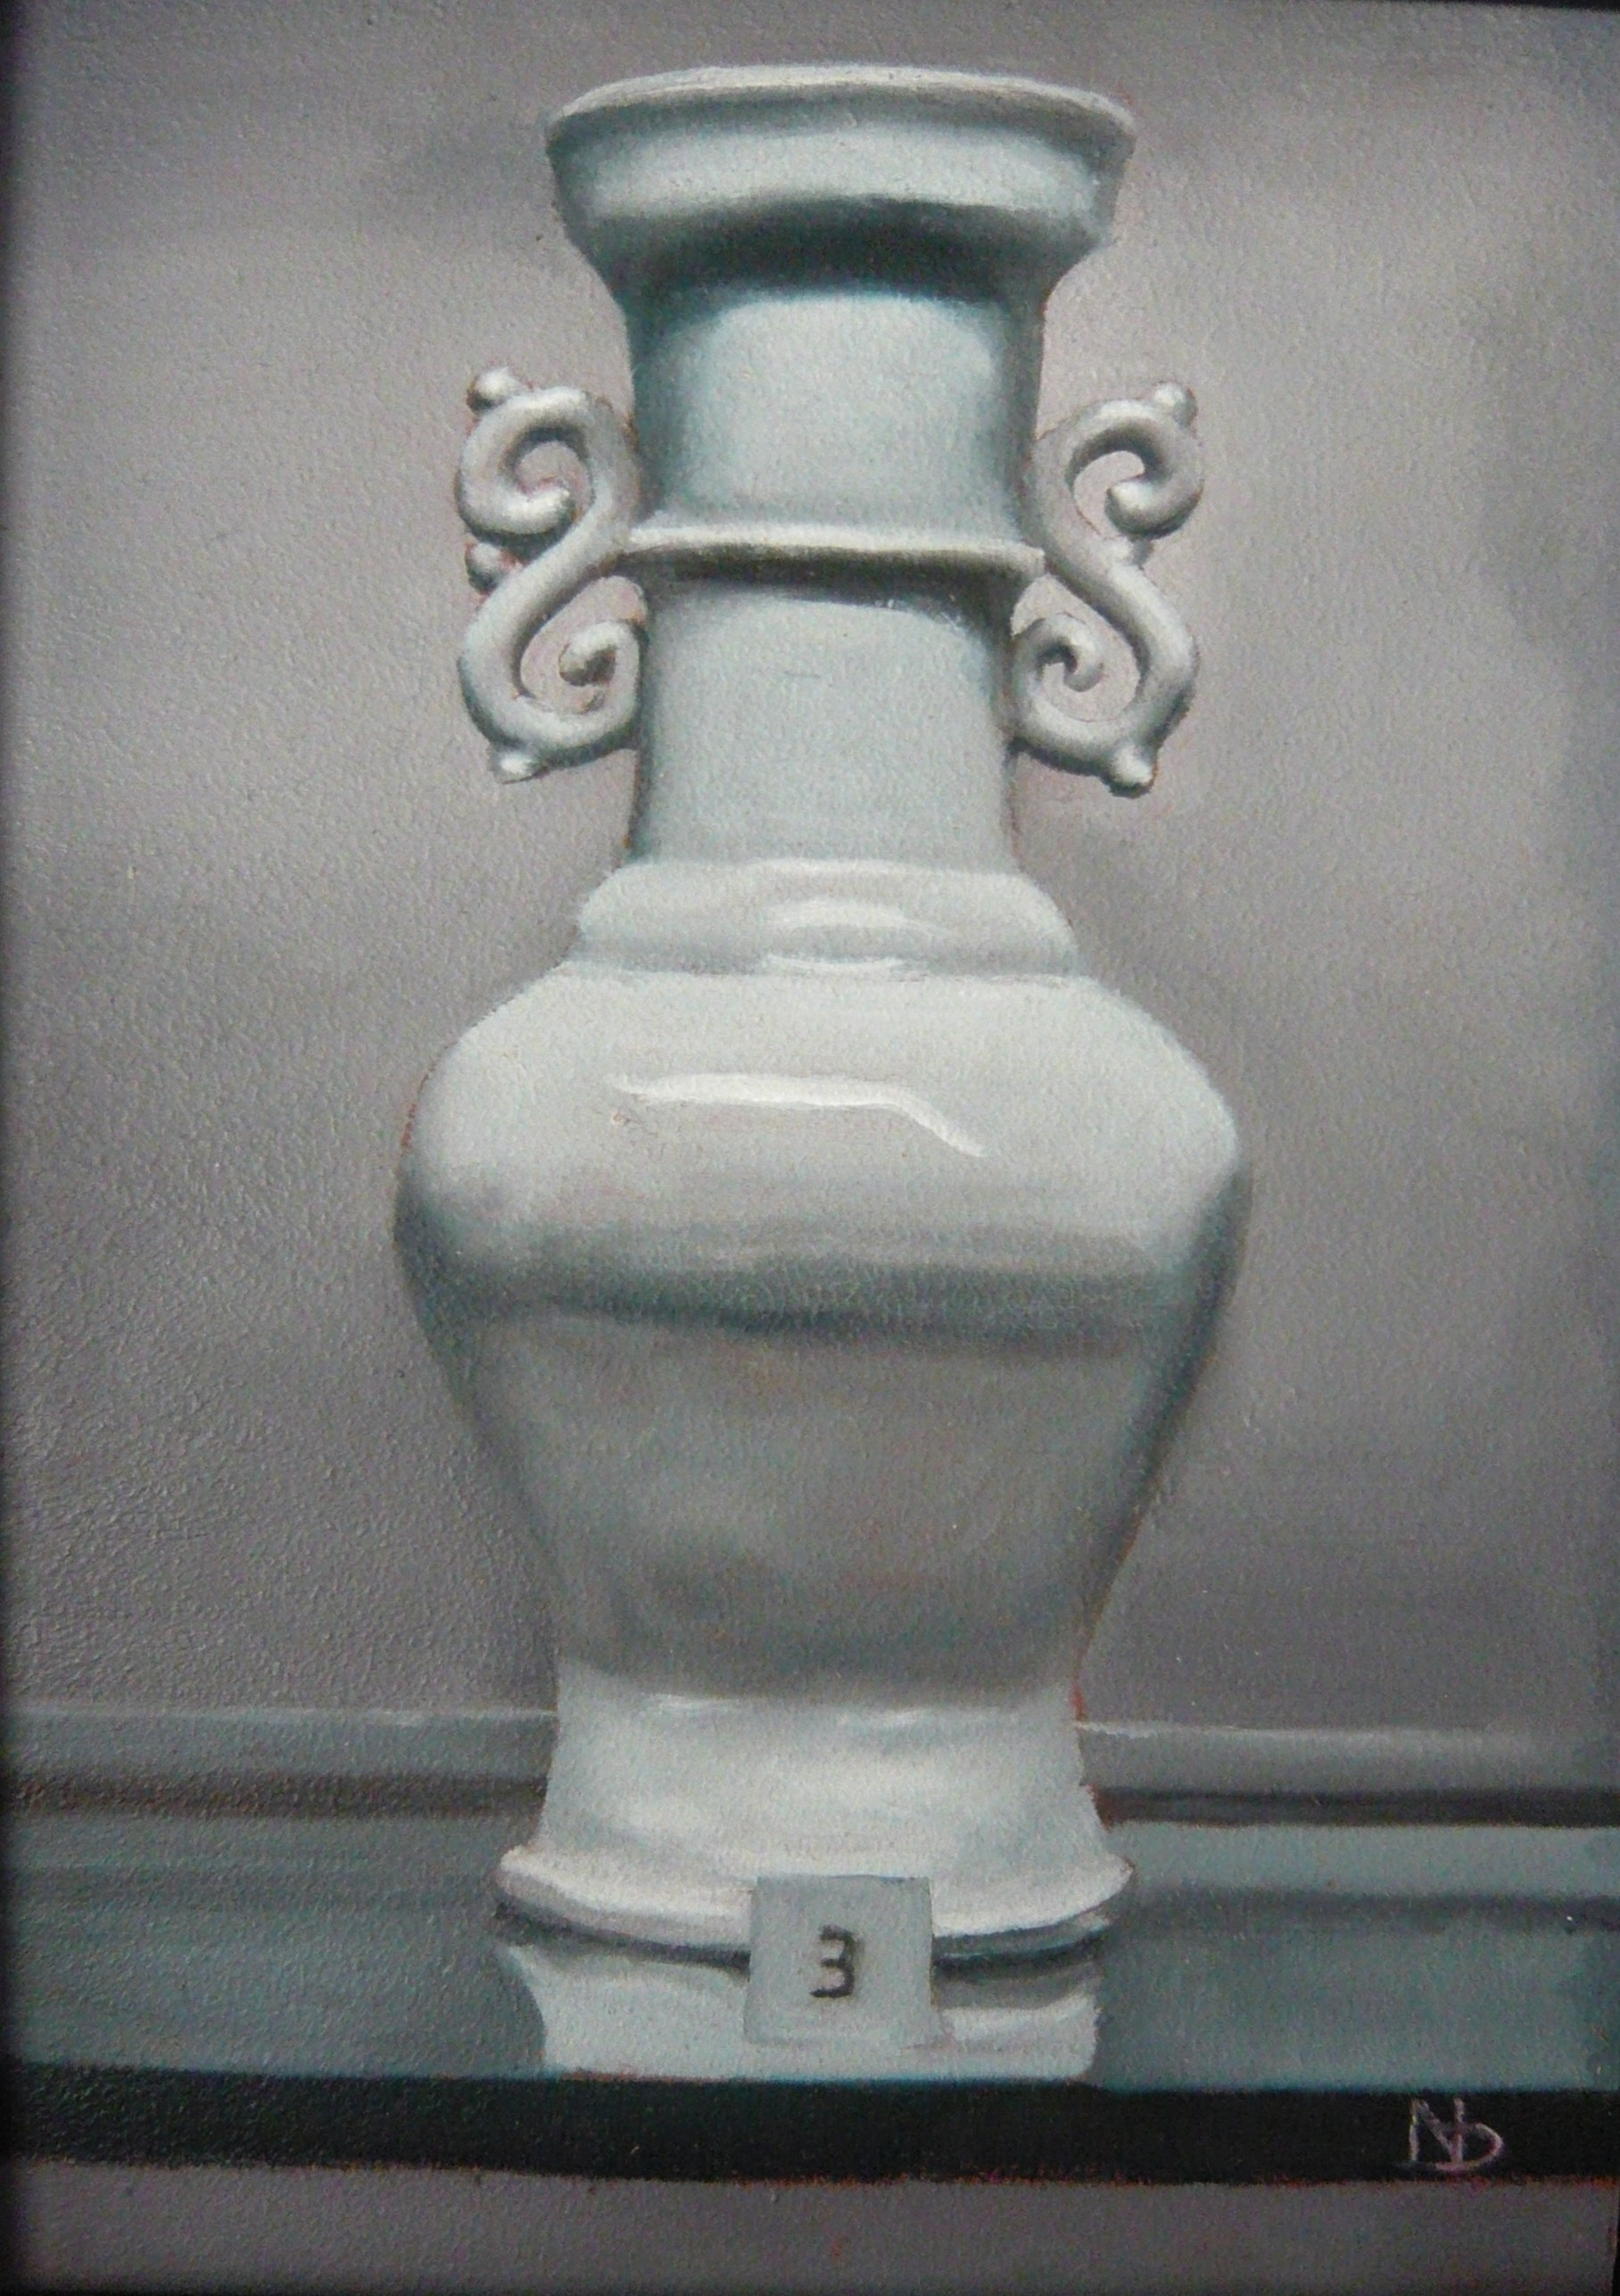 Vase in a Museum